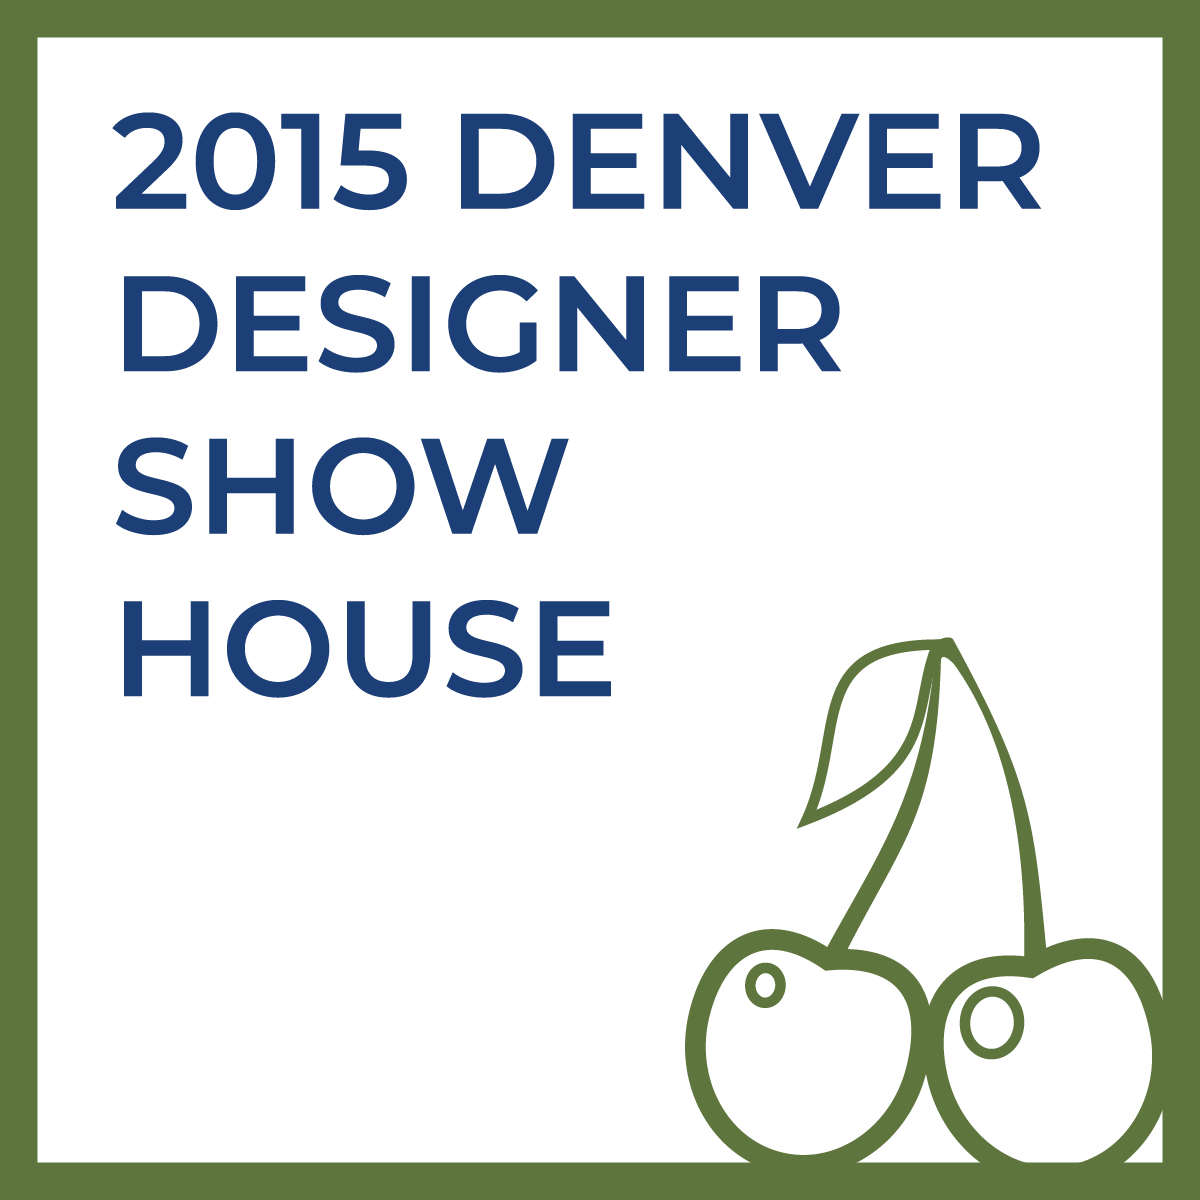 2015 Denver Designer Show House